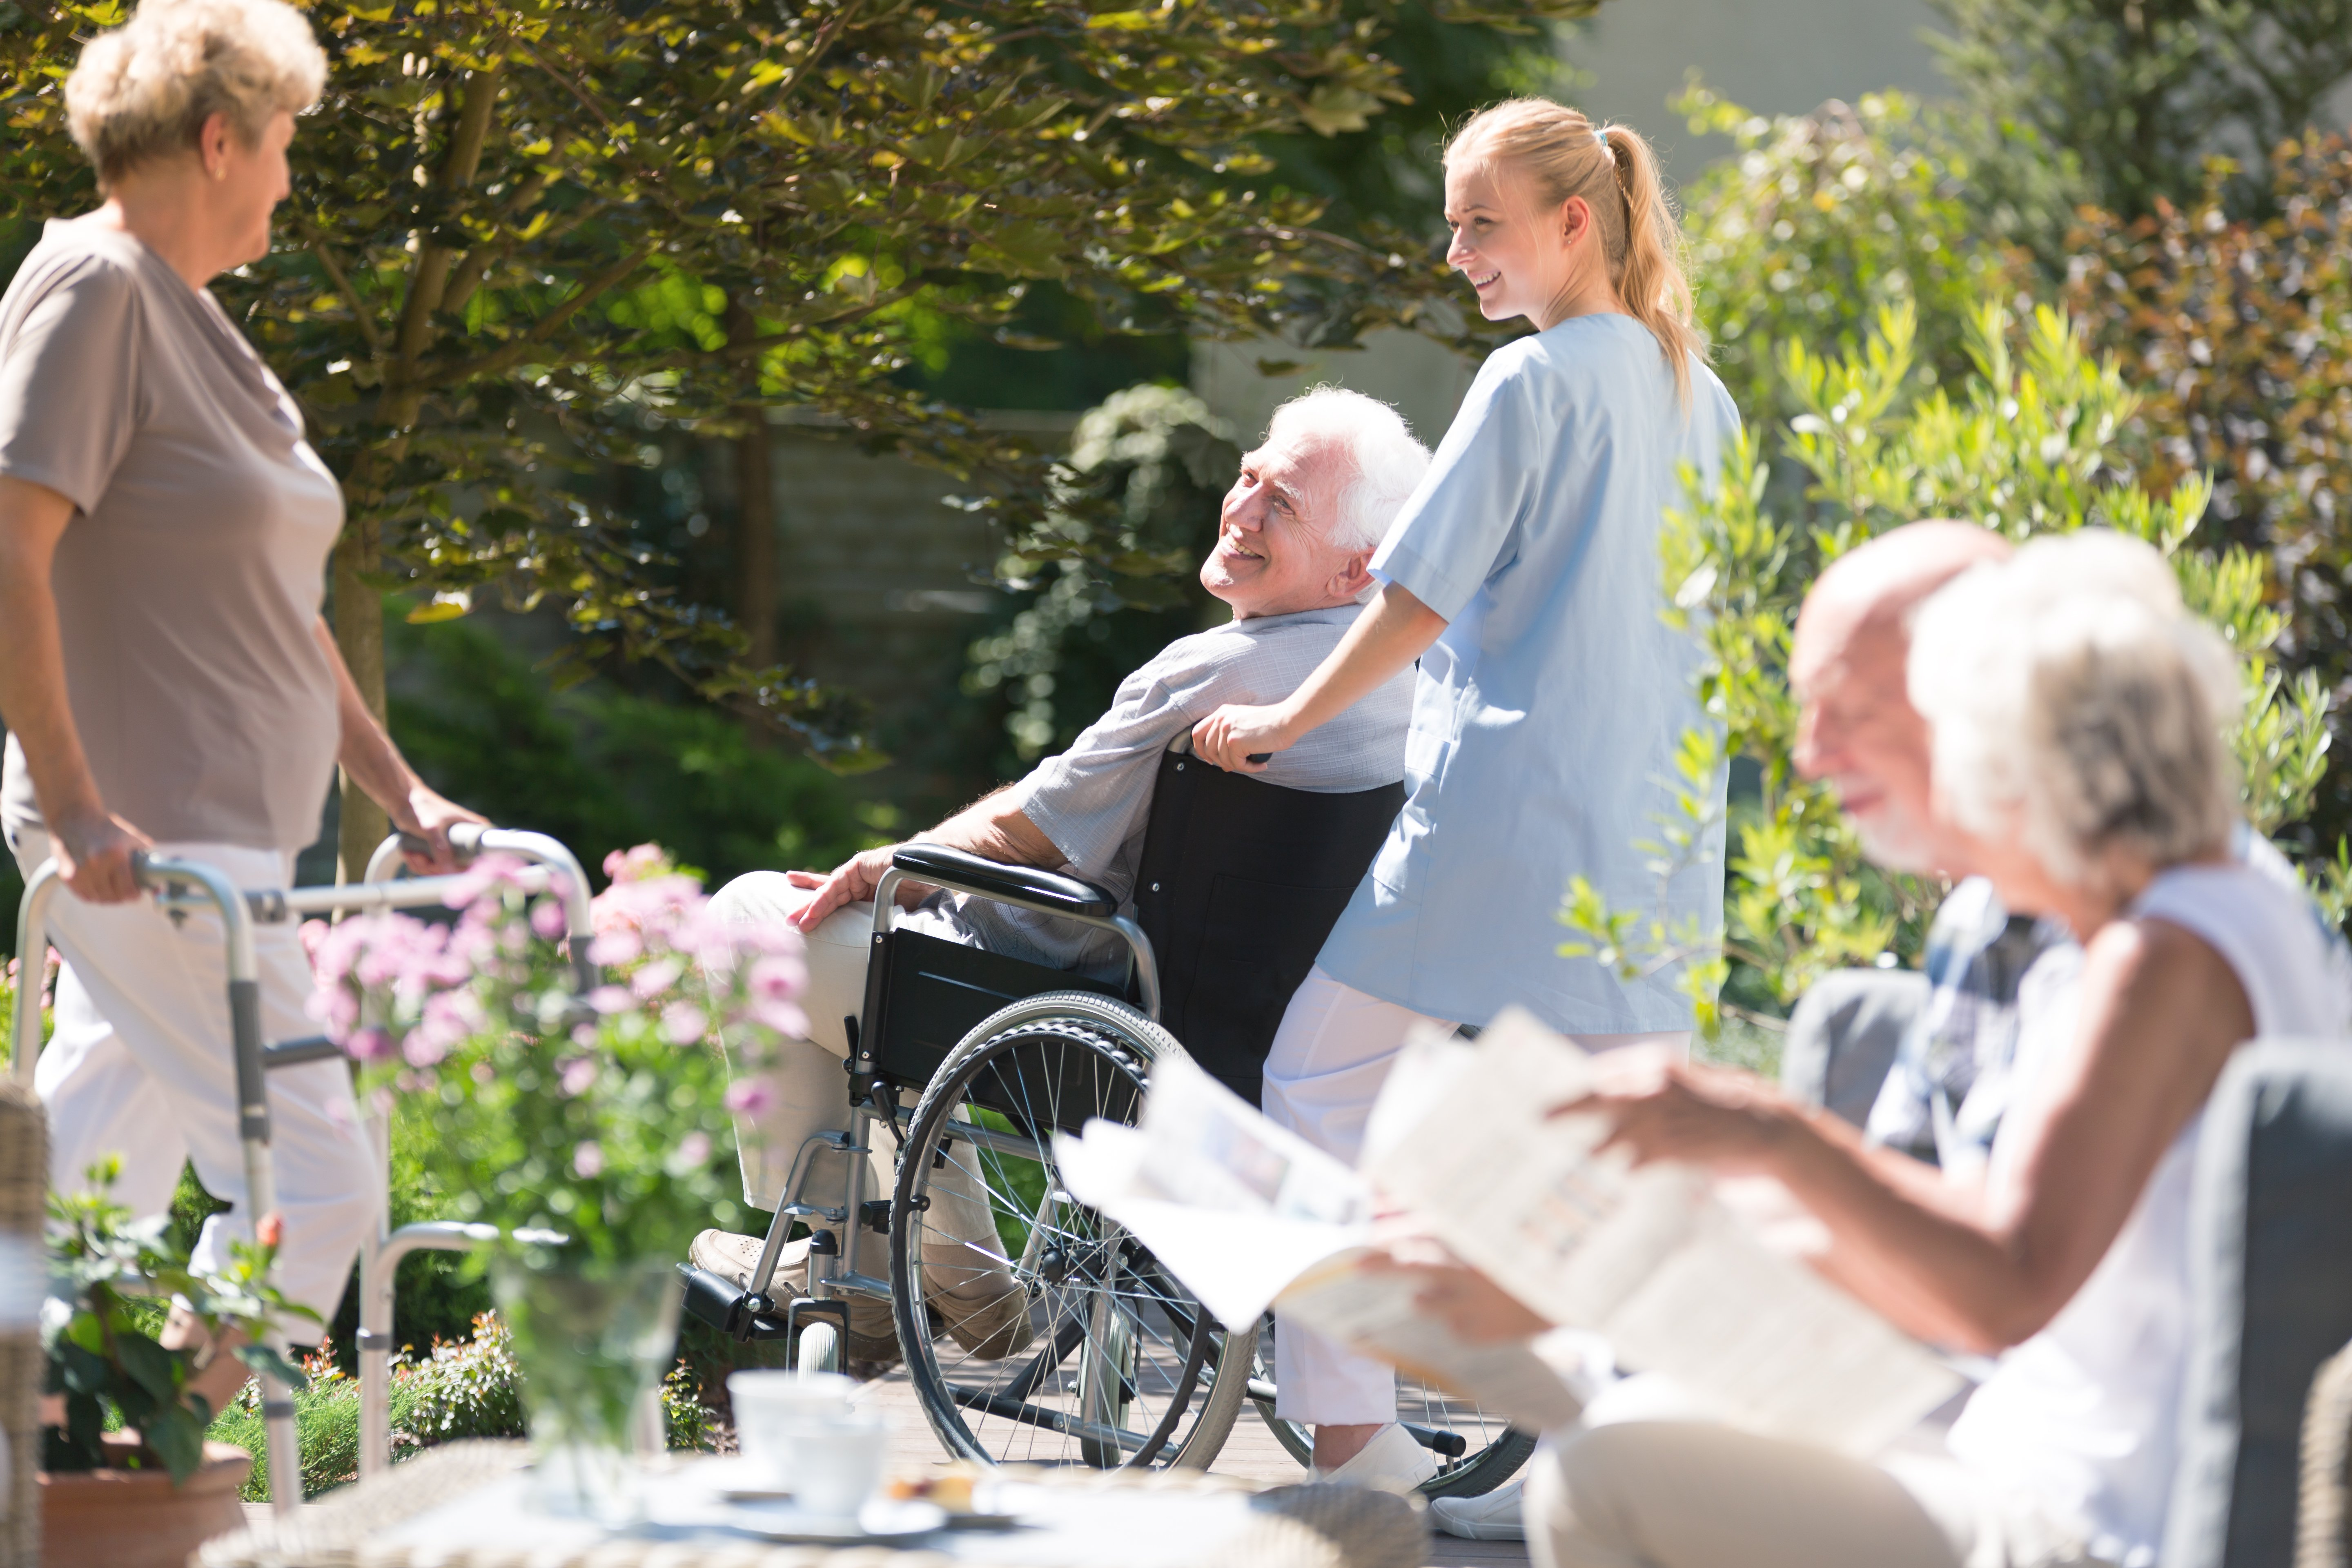 When Is the Right Time to Visit an Assisted Living Community for the First Time?